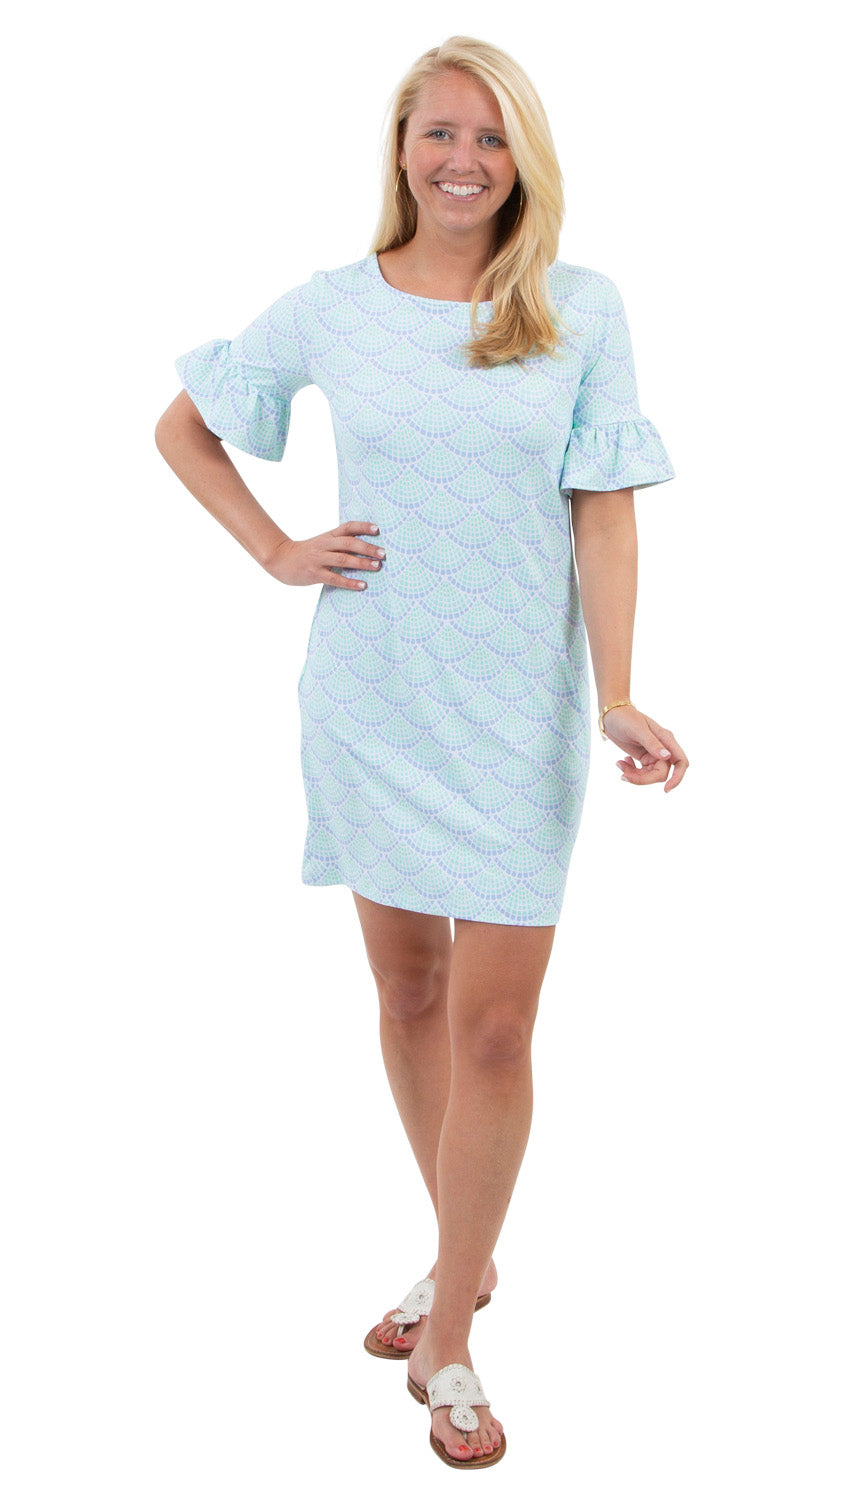 Dockside Dress - Seaglass - BACK ORDERED 'TIL 4/15